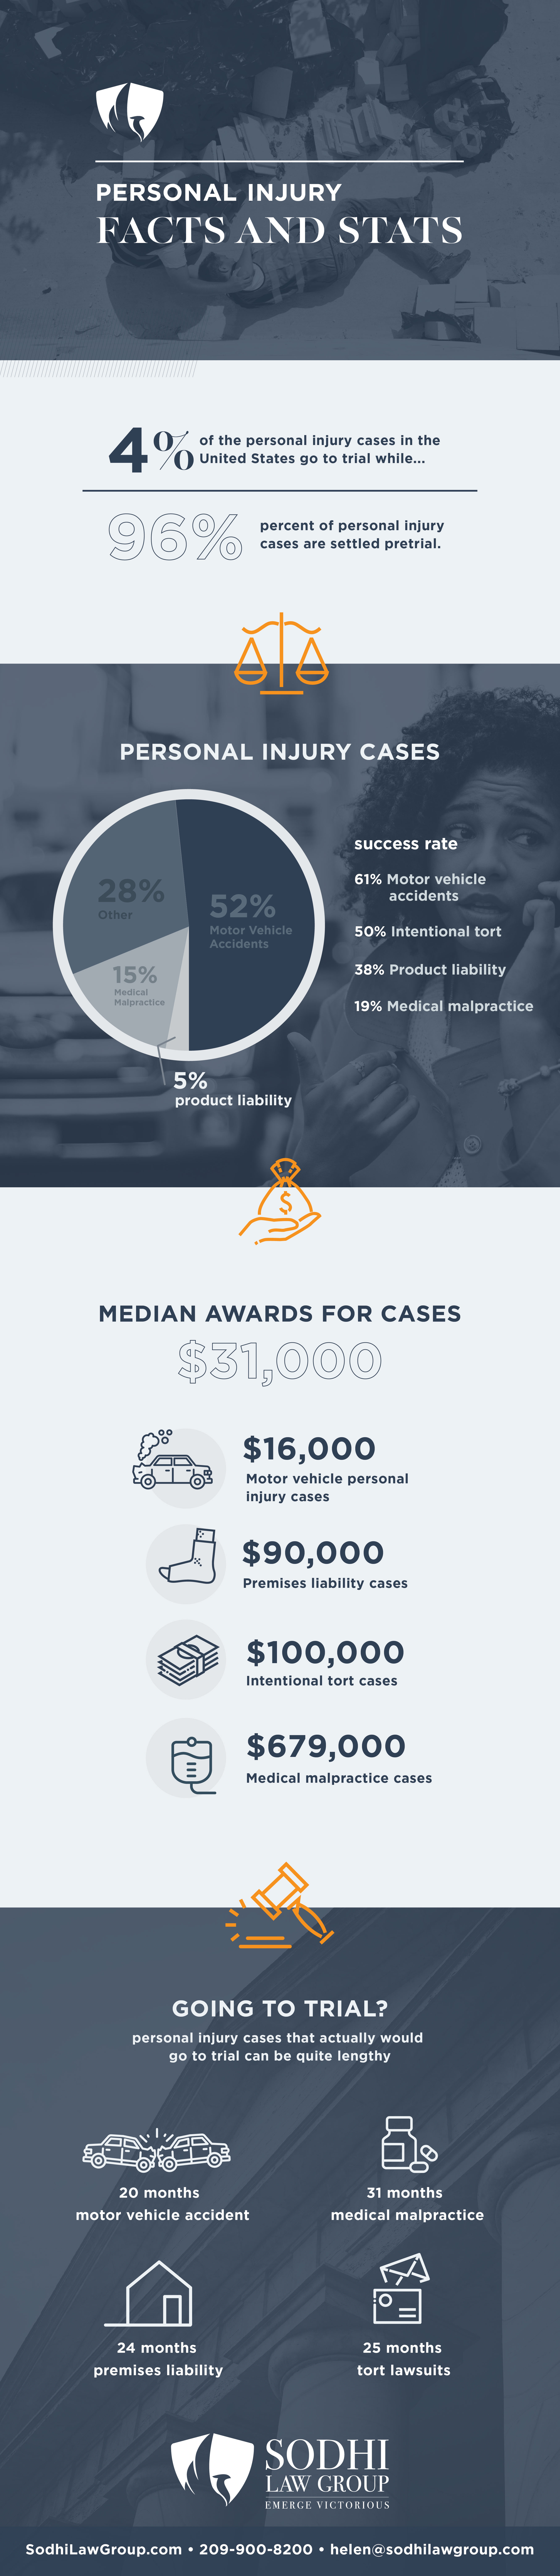 Personal Injury Infographic Personal Injury Facts